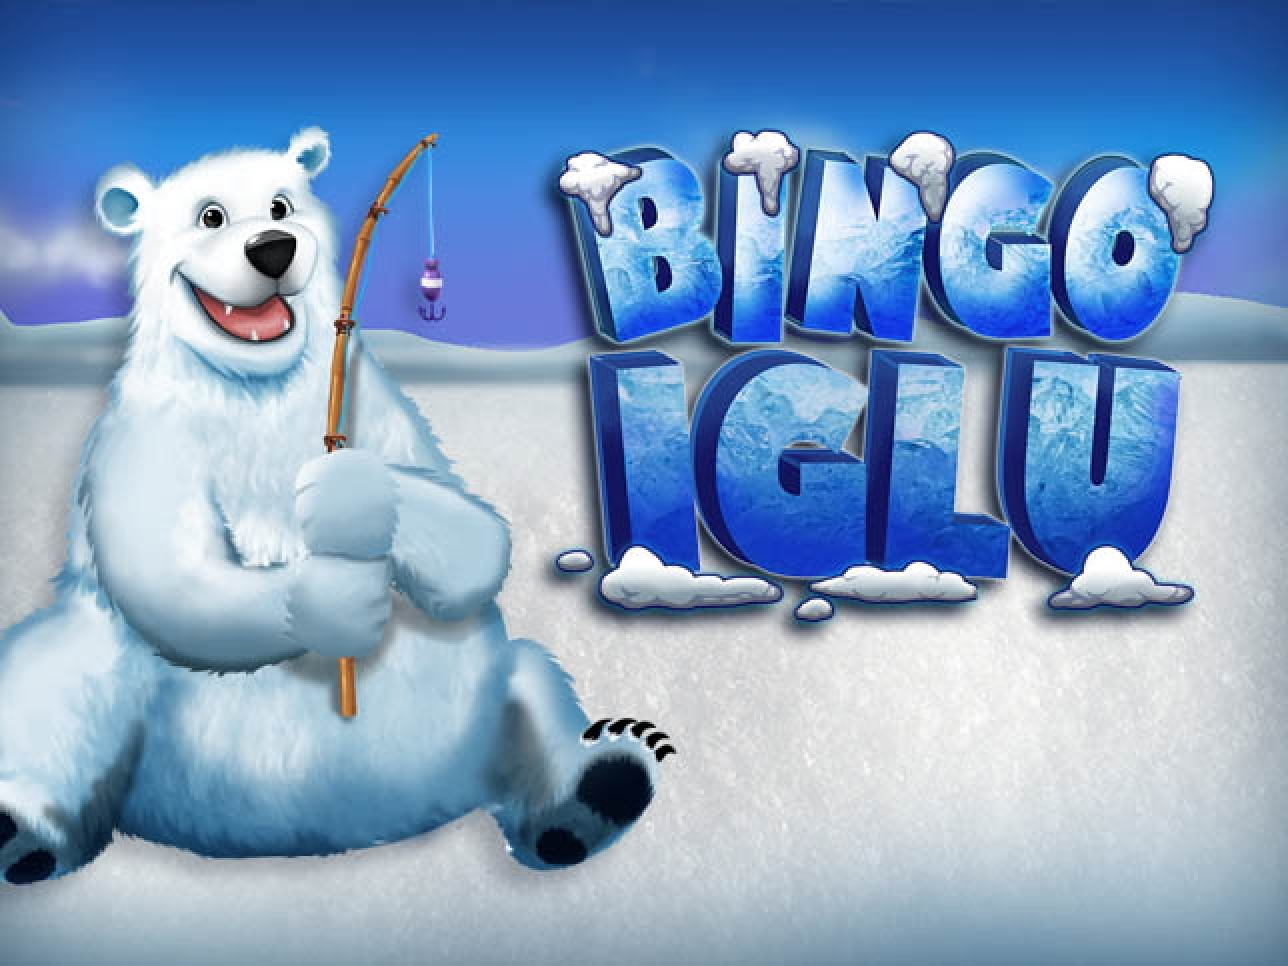 Se Bingo Iglu Online Slot Demo Game, Caleta Gaming